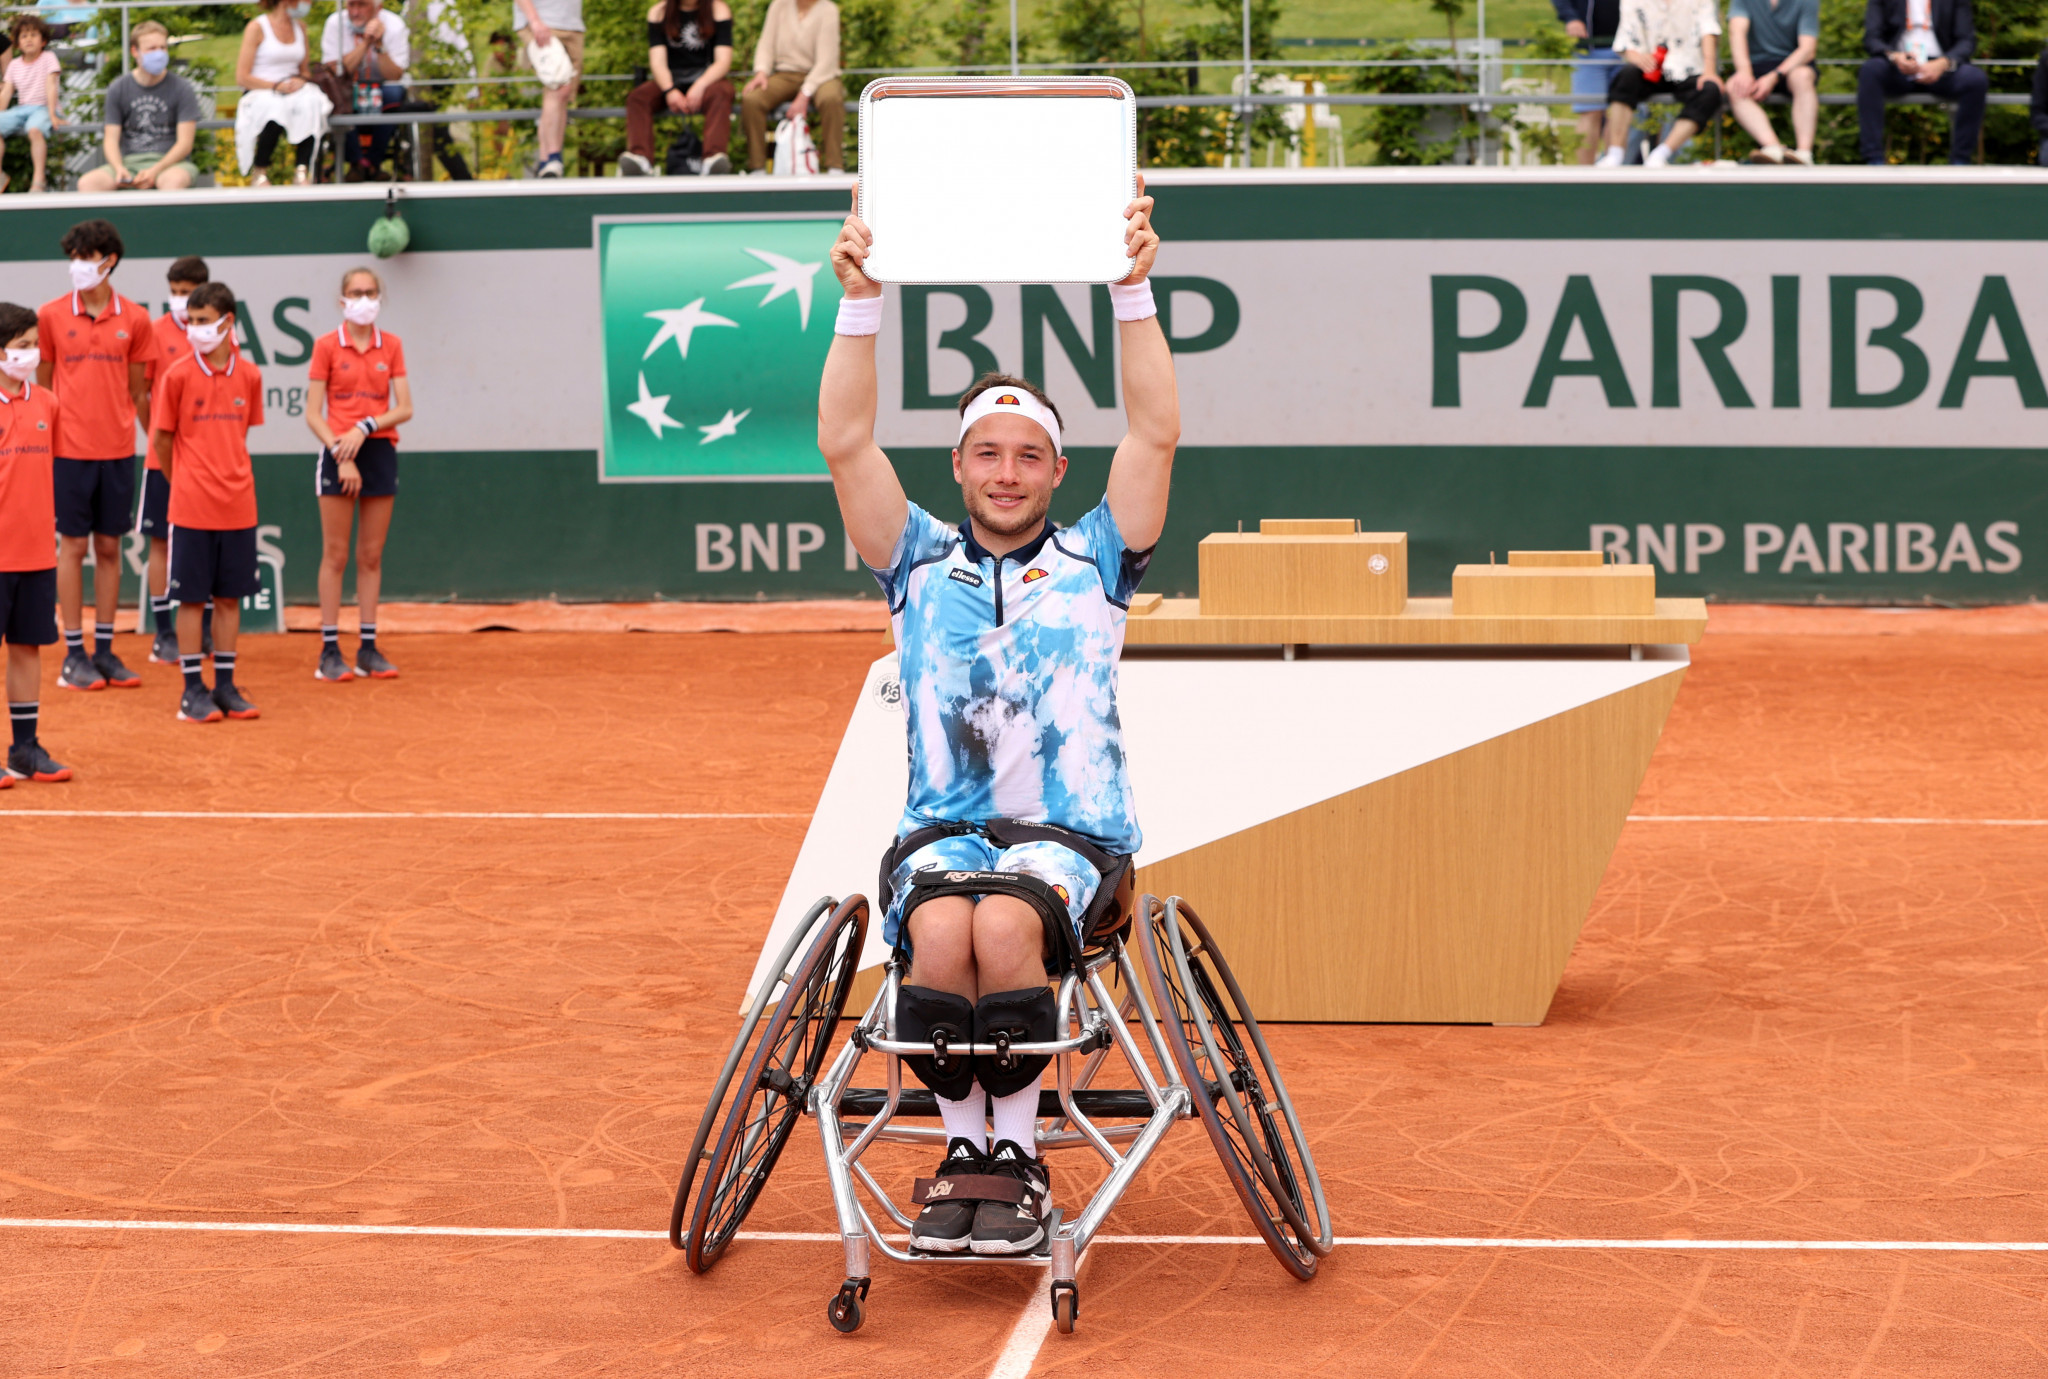 Hewett wins wheelchair men's singles title at French Open